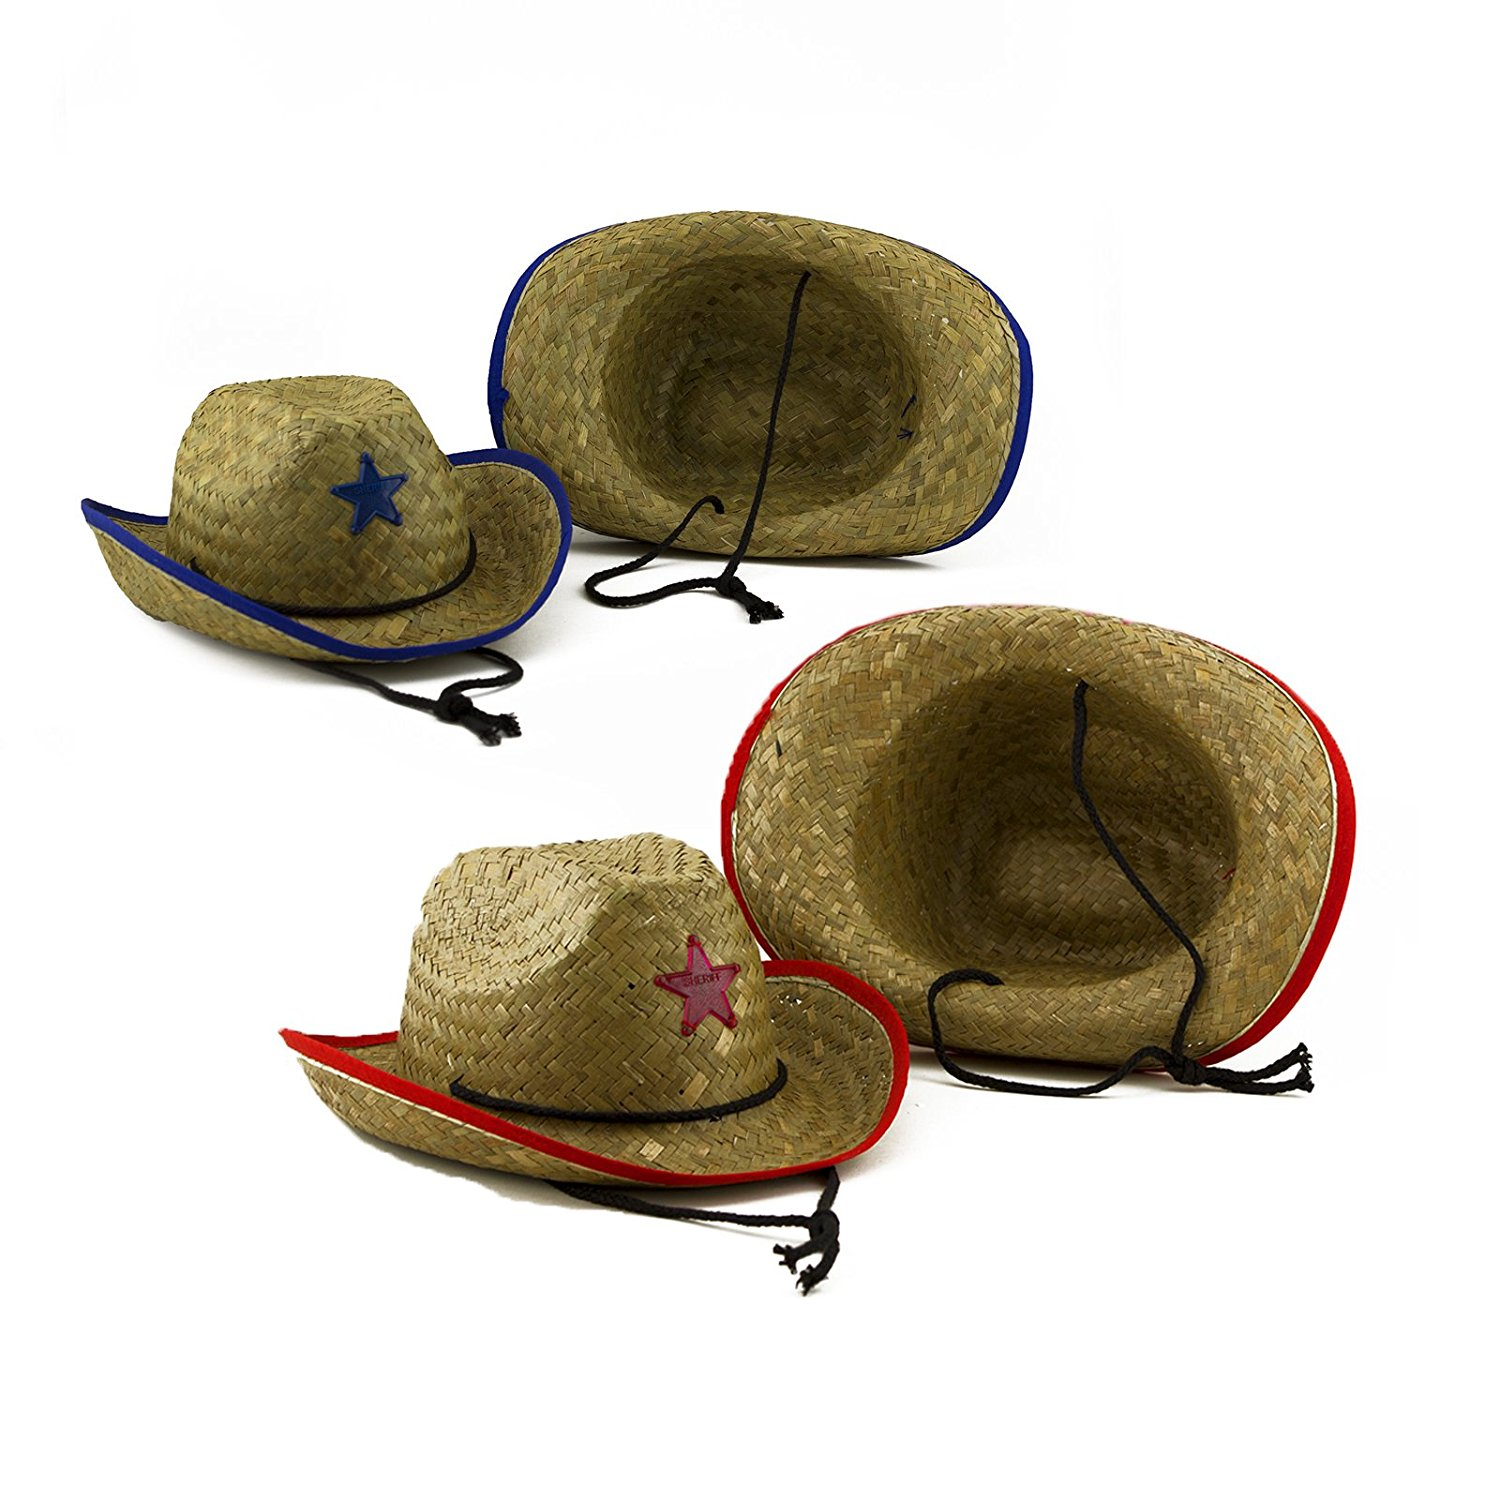 b98940a8476be Get Quotations · Adorox 12pcs Straw Cowboy Hat Sheriff Police Prison  Halloween Costume Accessory